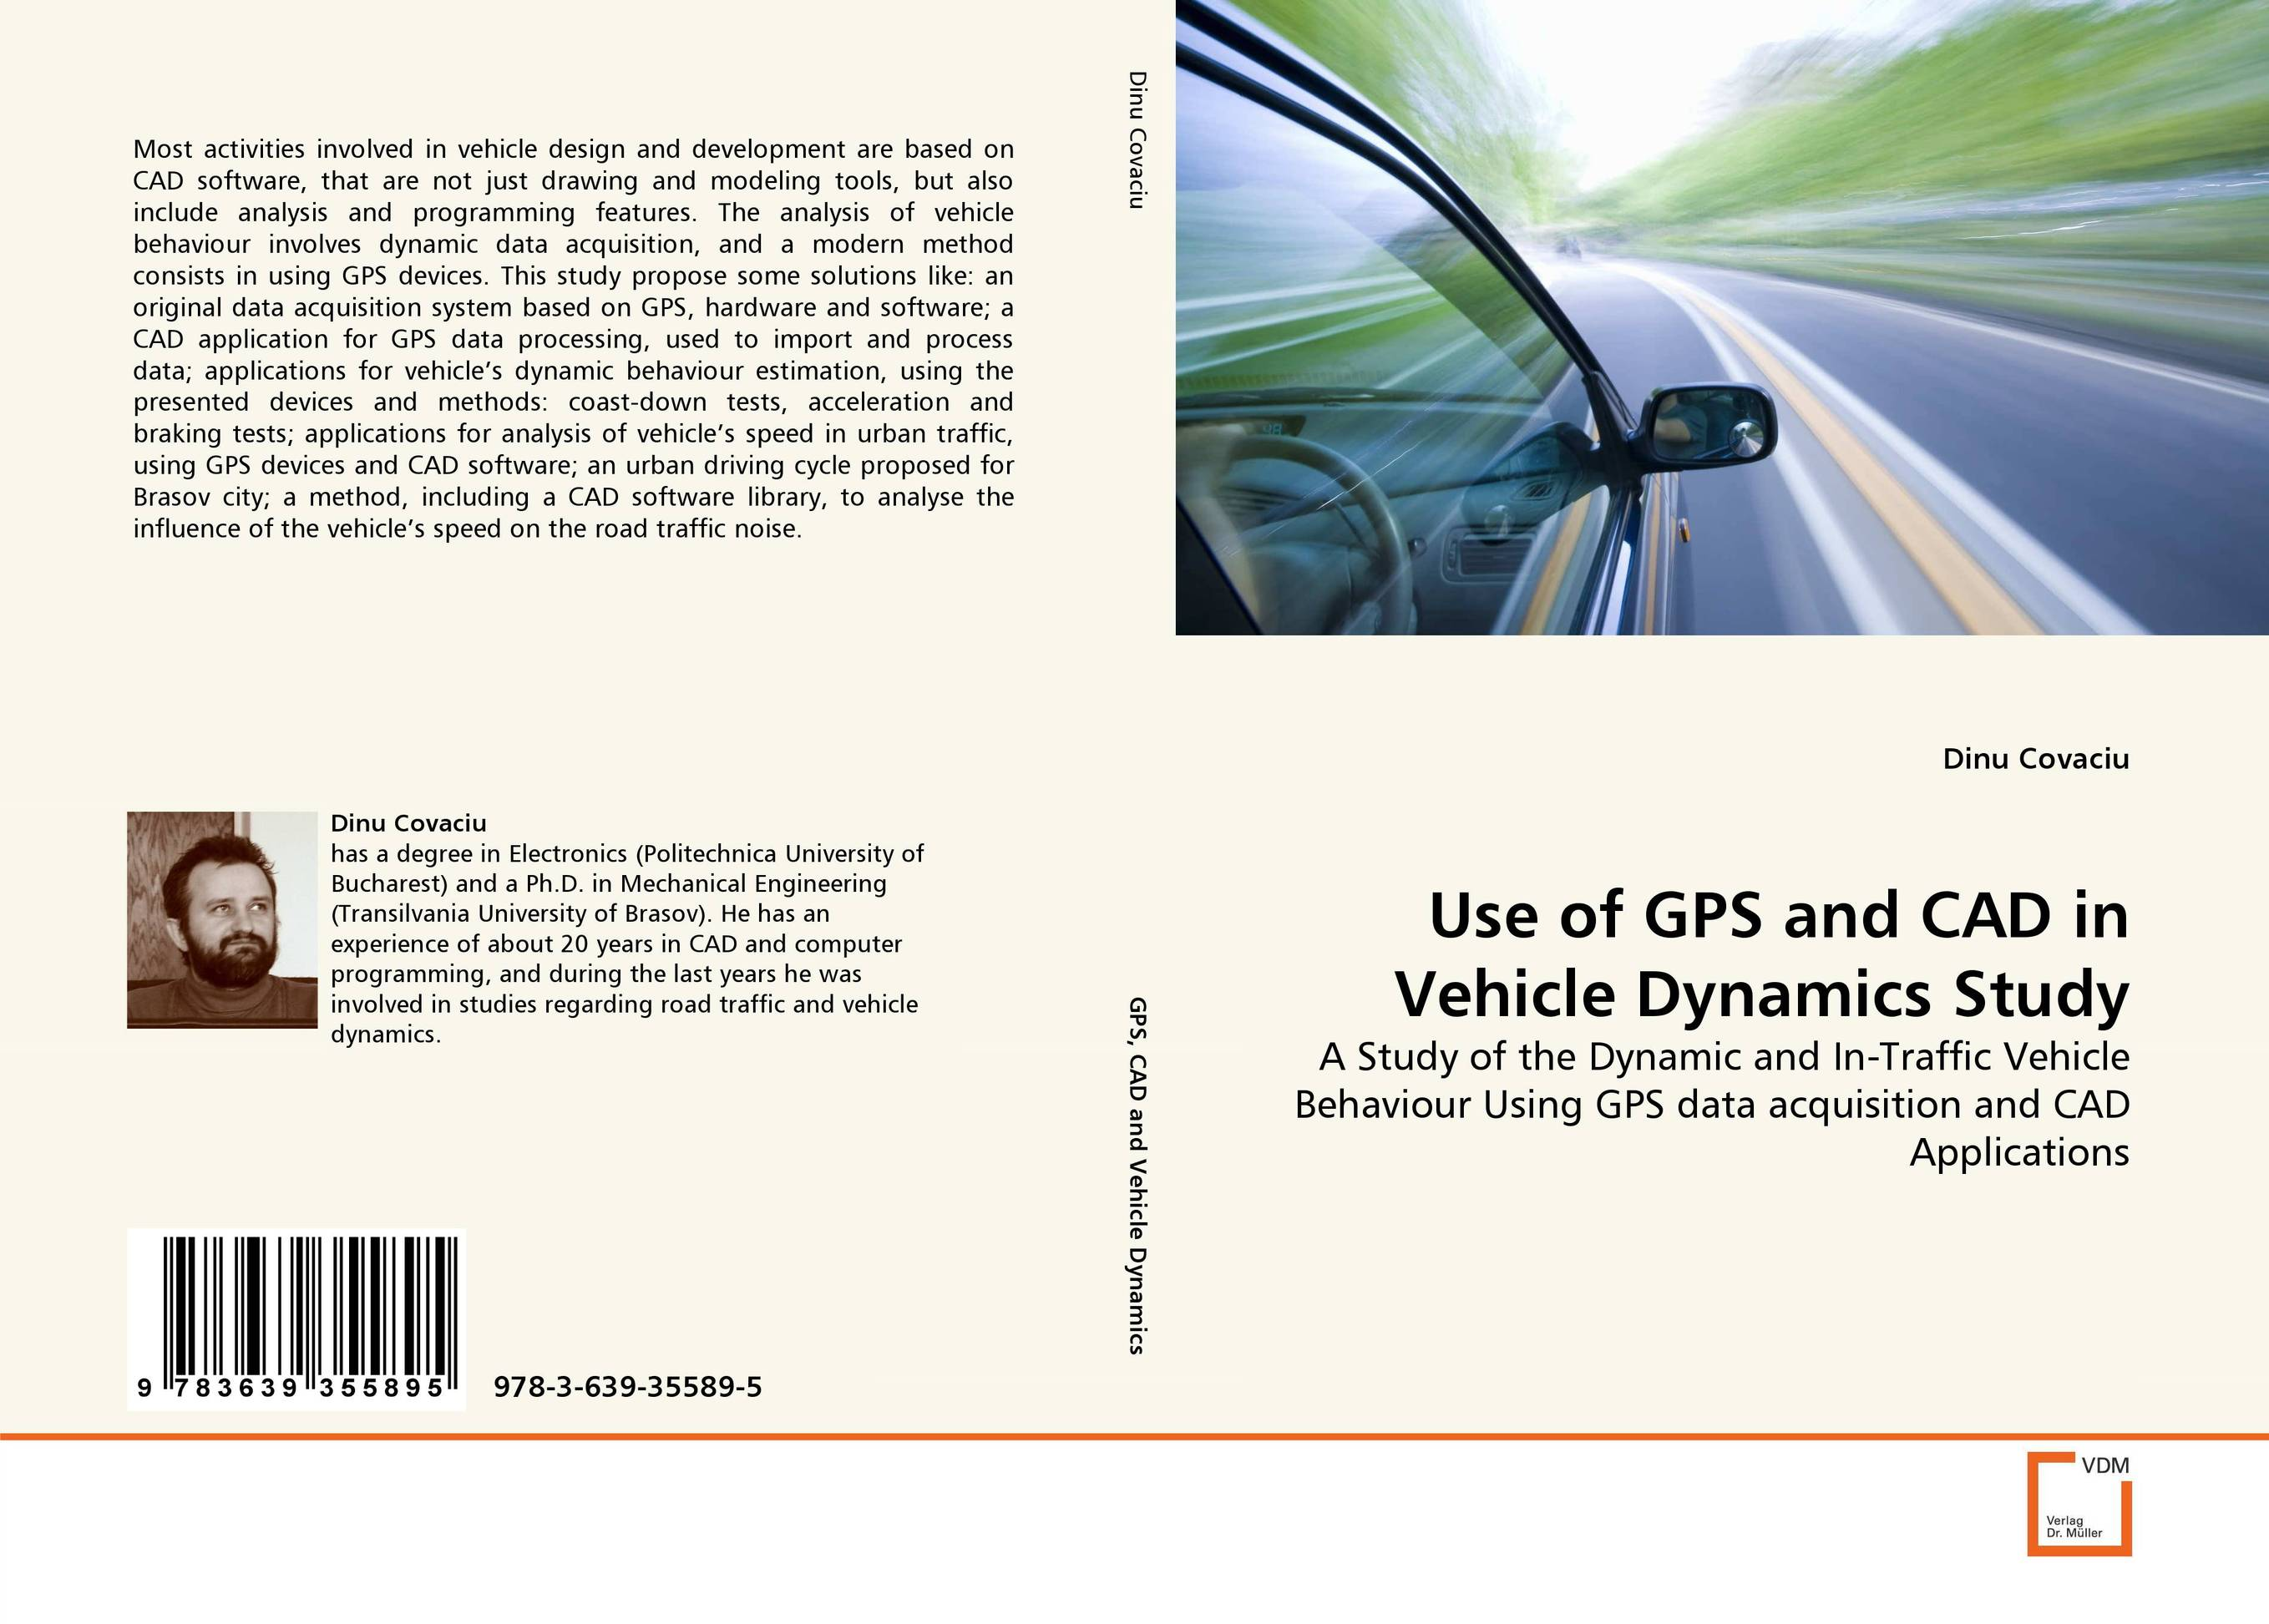 Use of GPS and CAD in Vehicle Dynamics Study complete dynamic analysis of stewart platform based on workspace